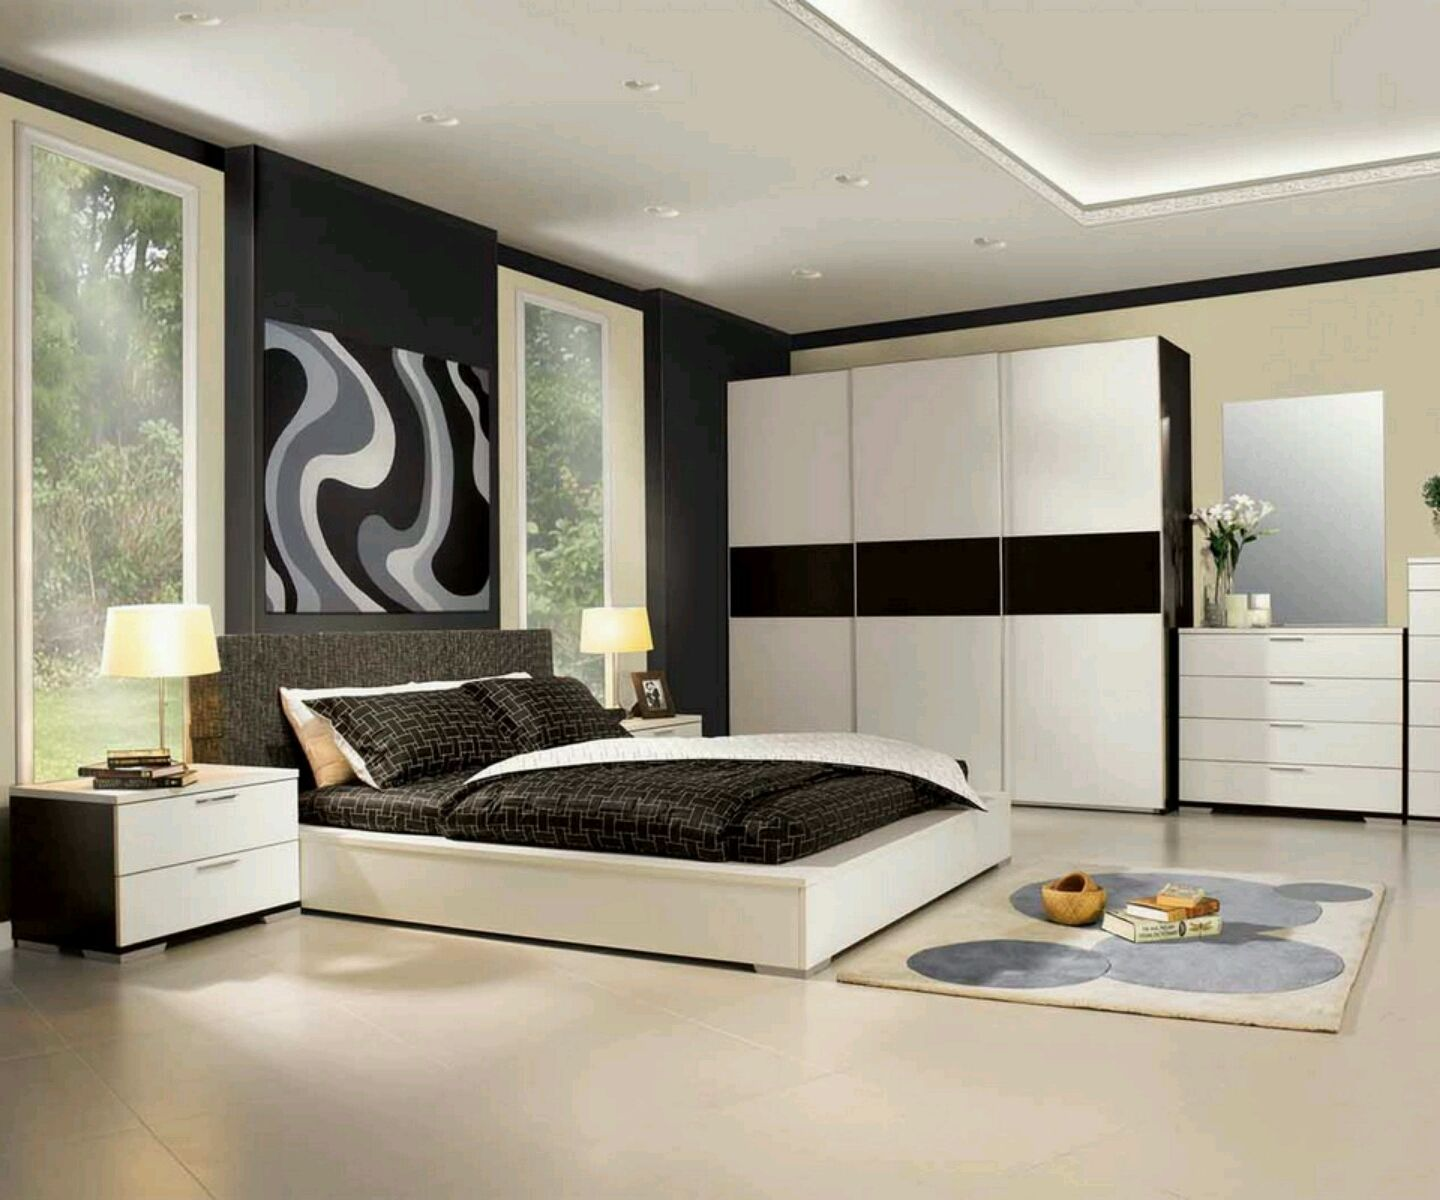 Bedroom Furniture Sets, Modern